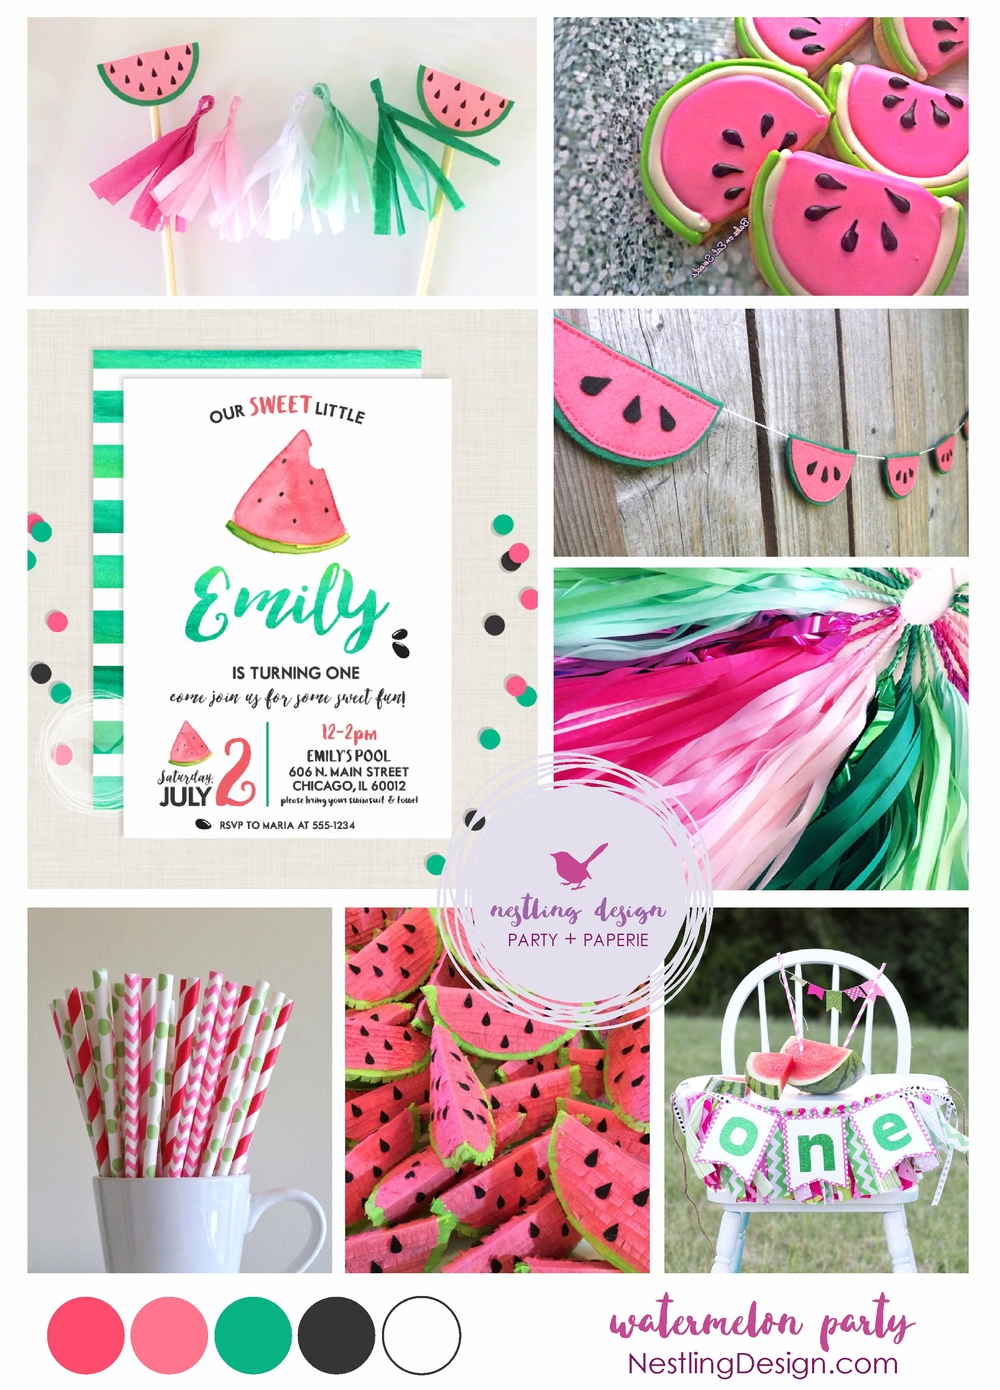 Nestling Design / Watermelon Party